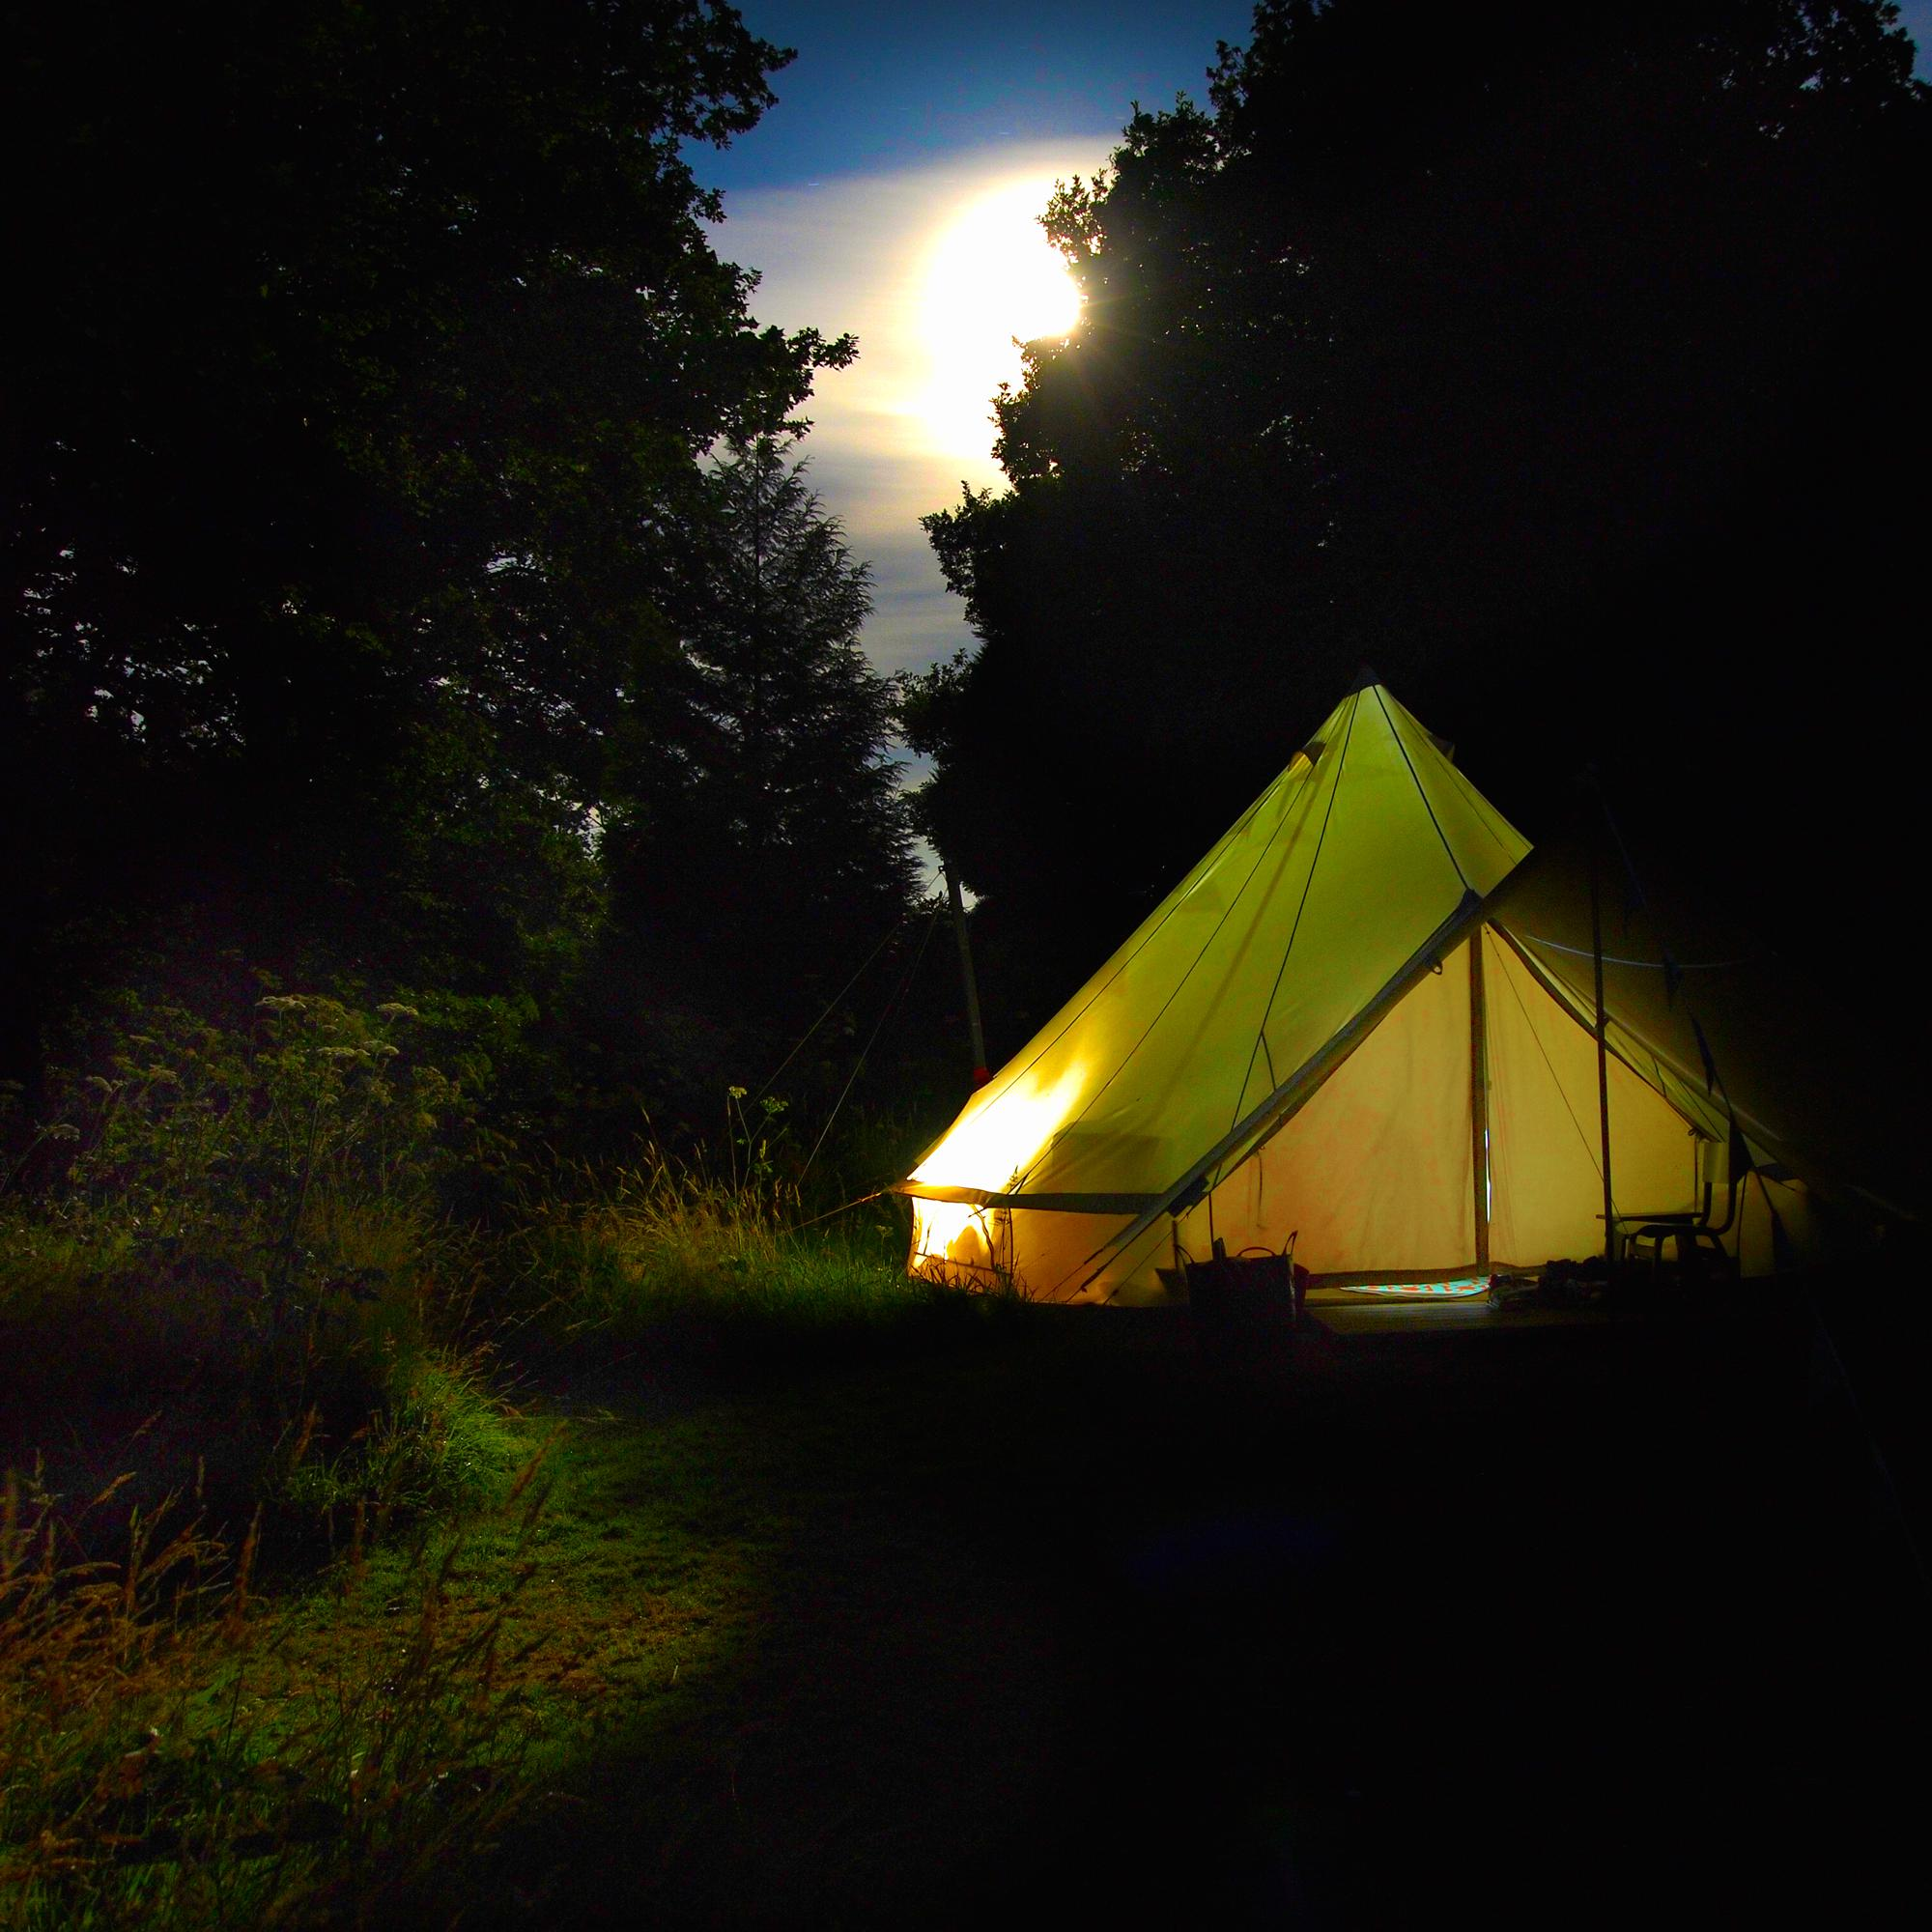 Amber's Bell Tent Camping at Walcis Farm